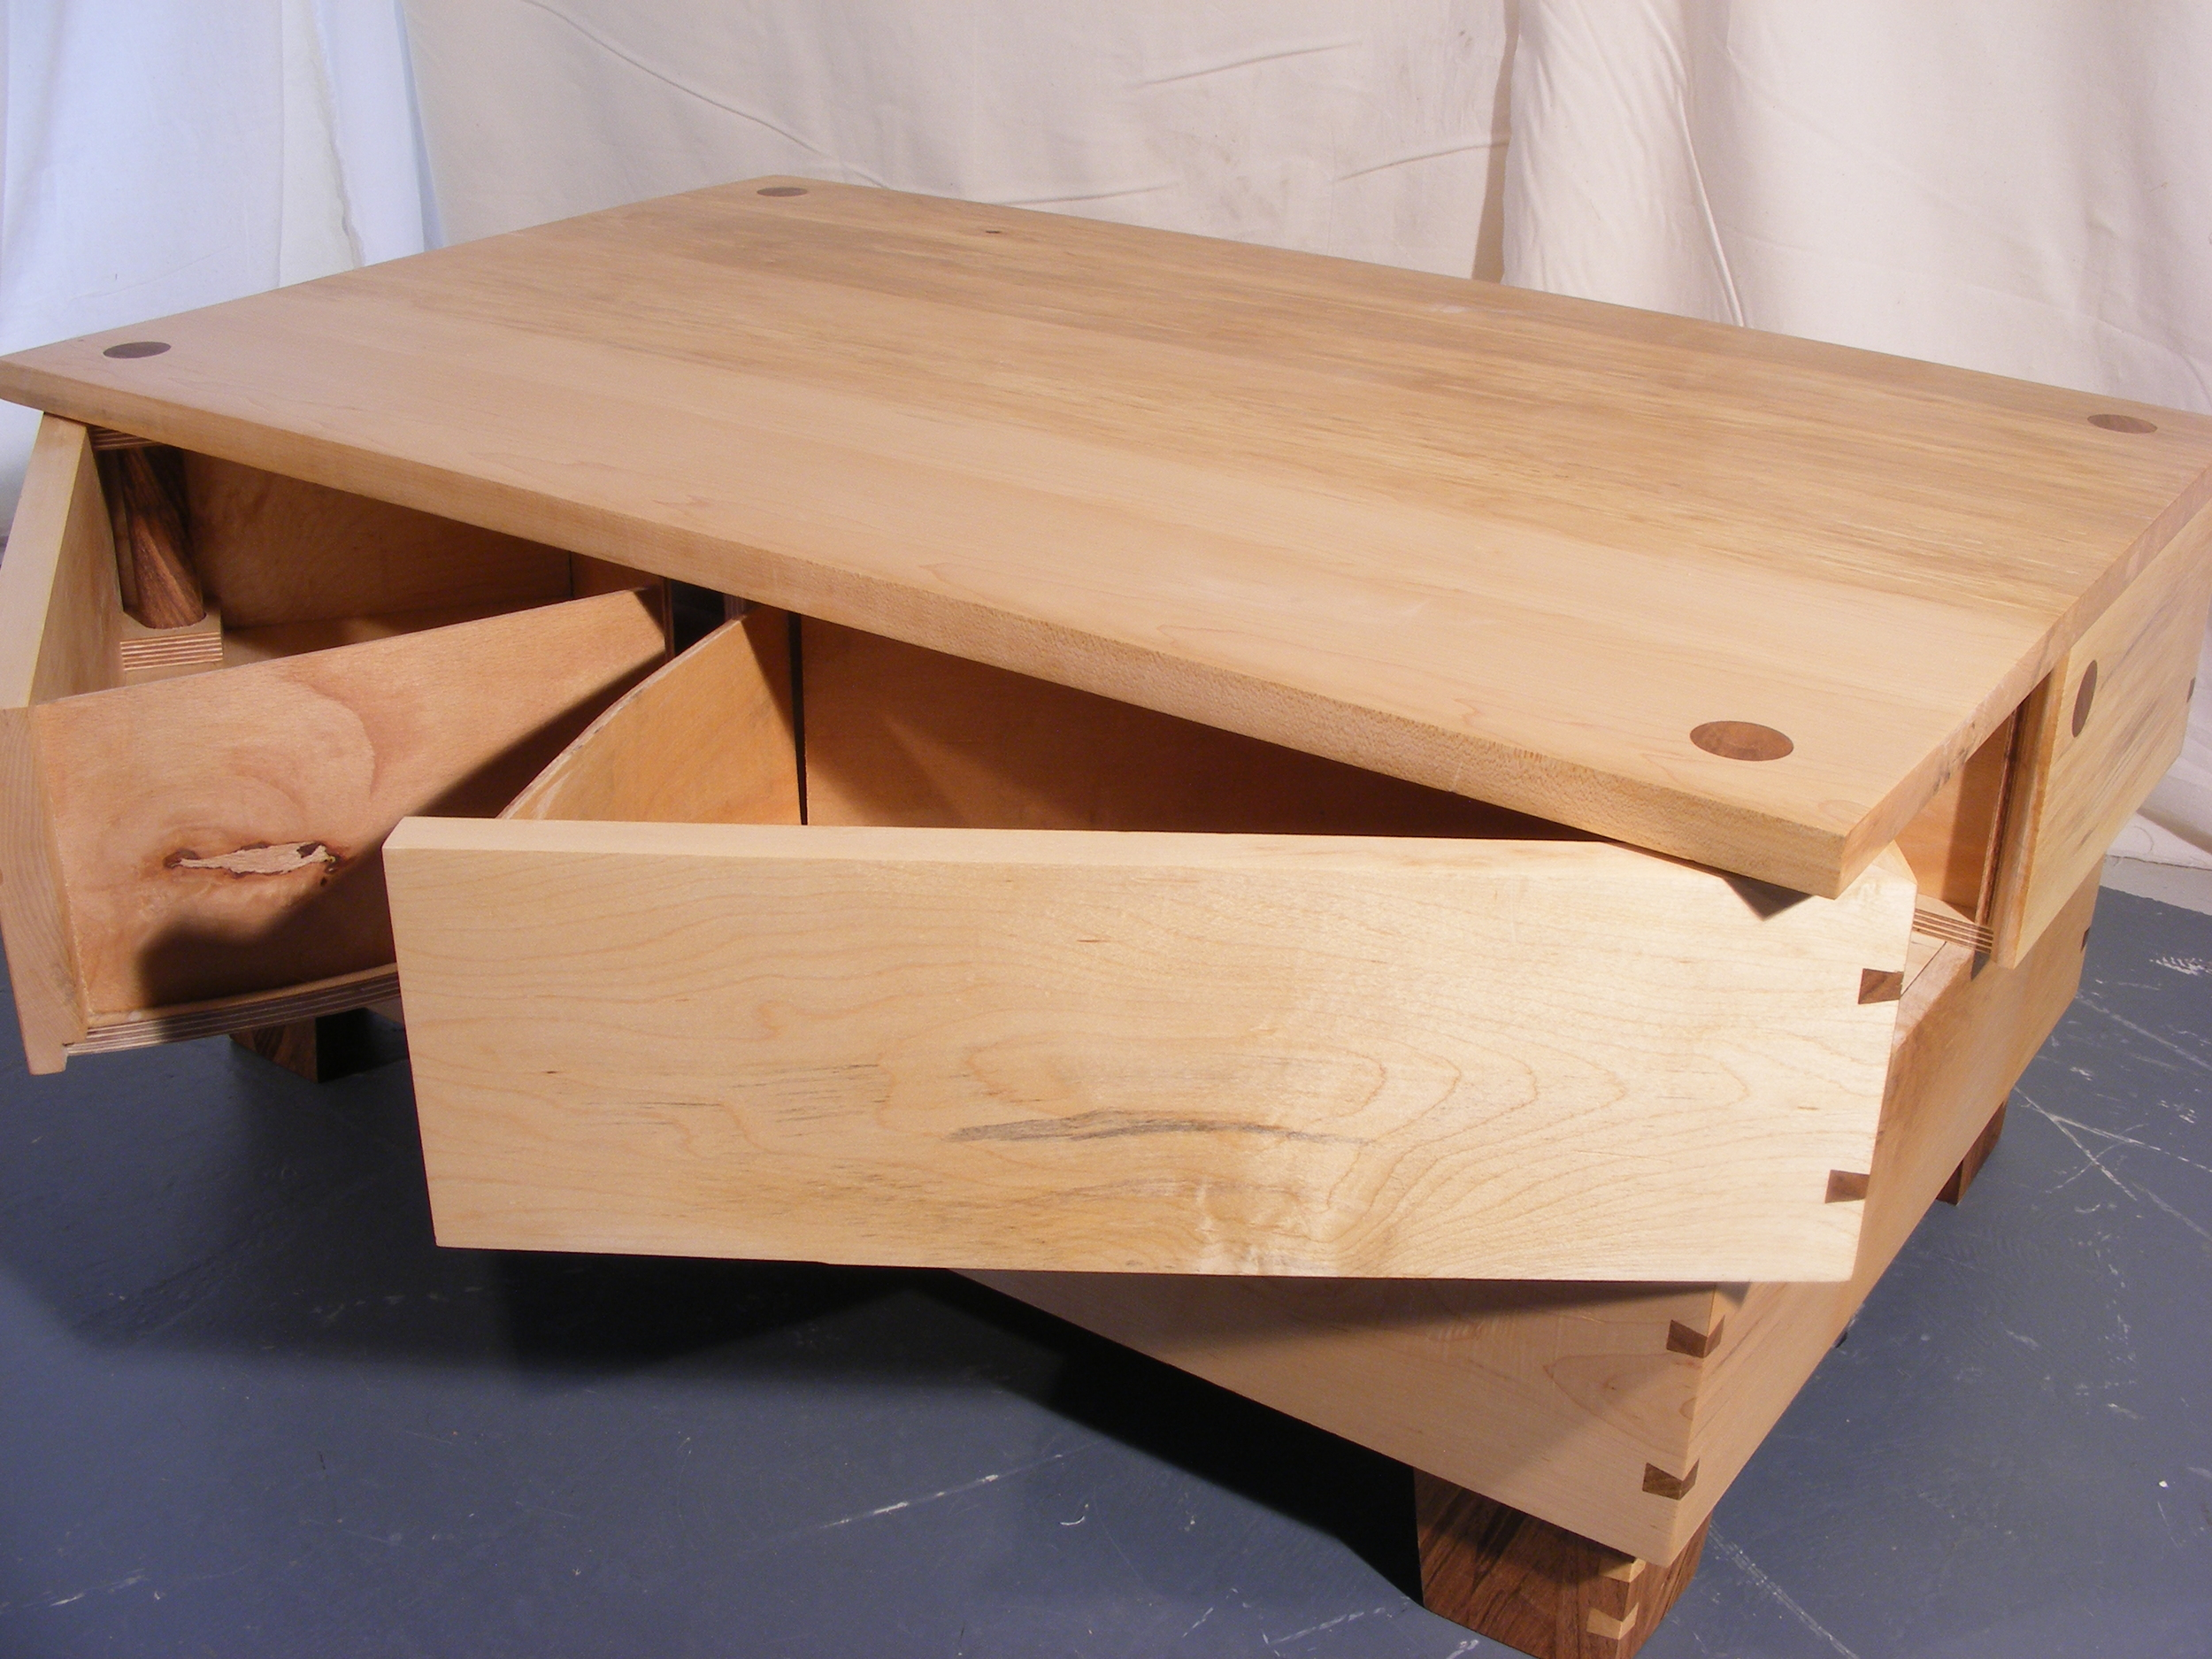 Pivoting coffe table drawers